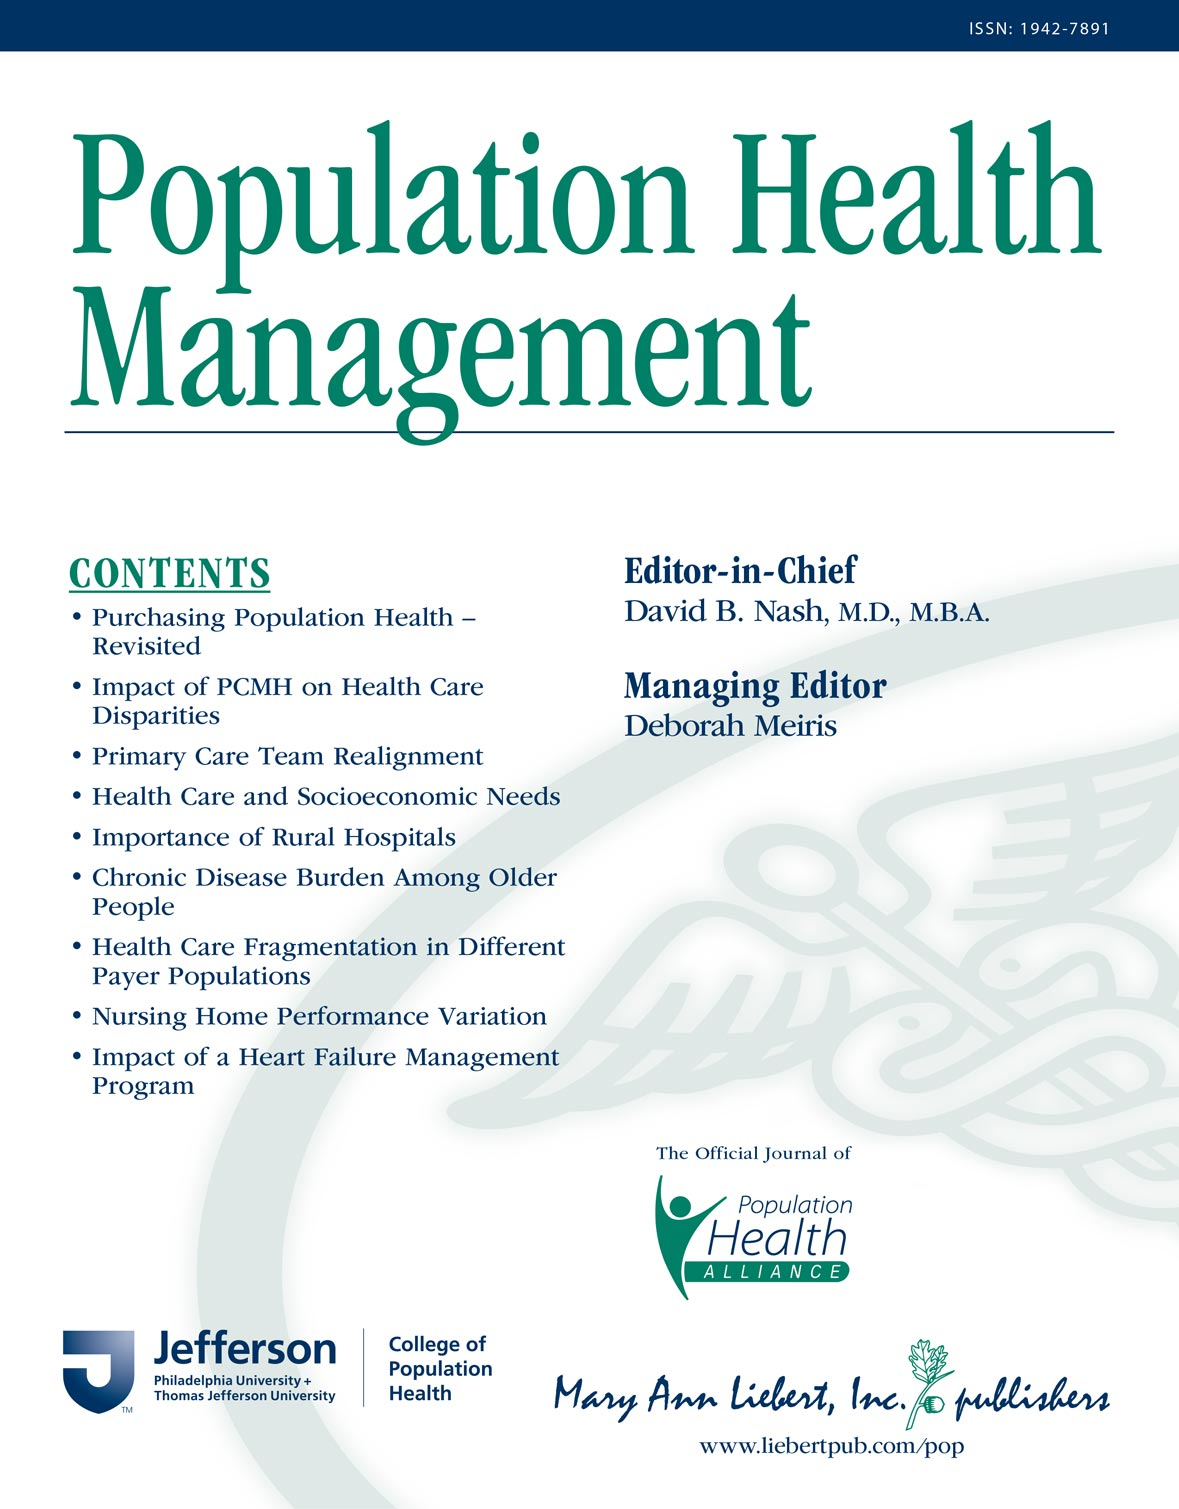 The American Opioid Epidemic: Population Health Implications and